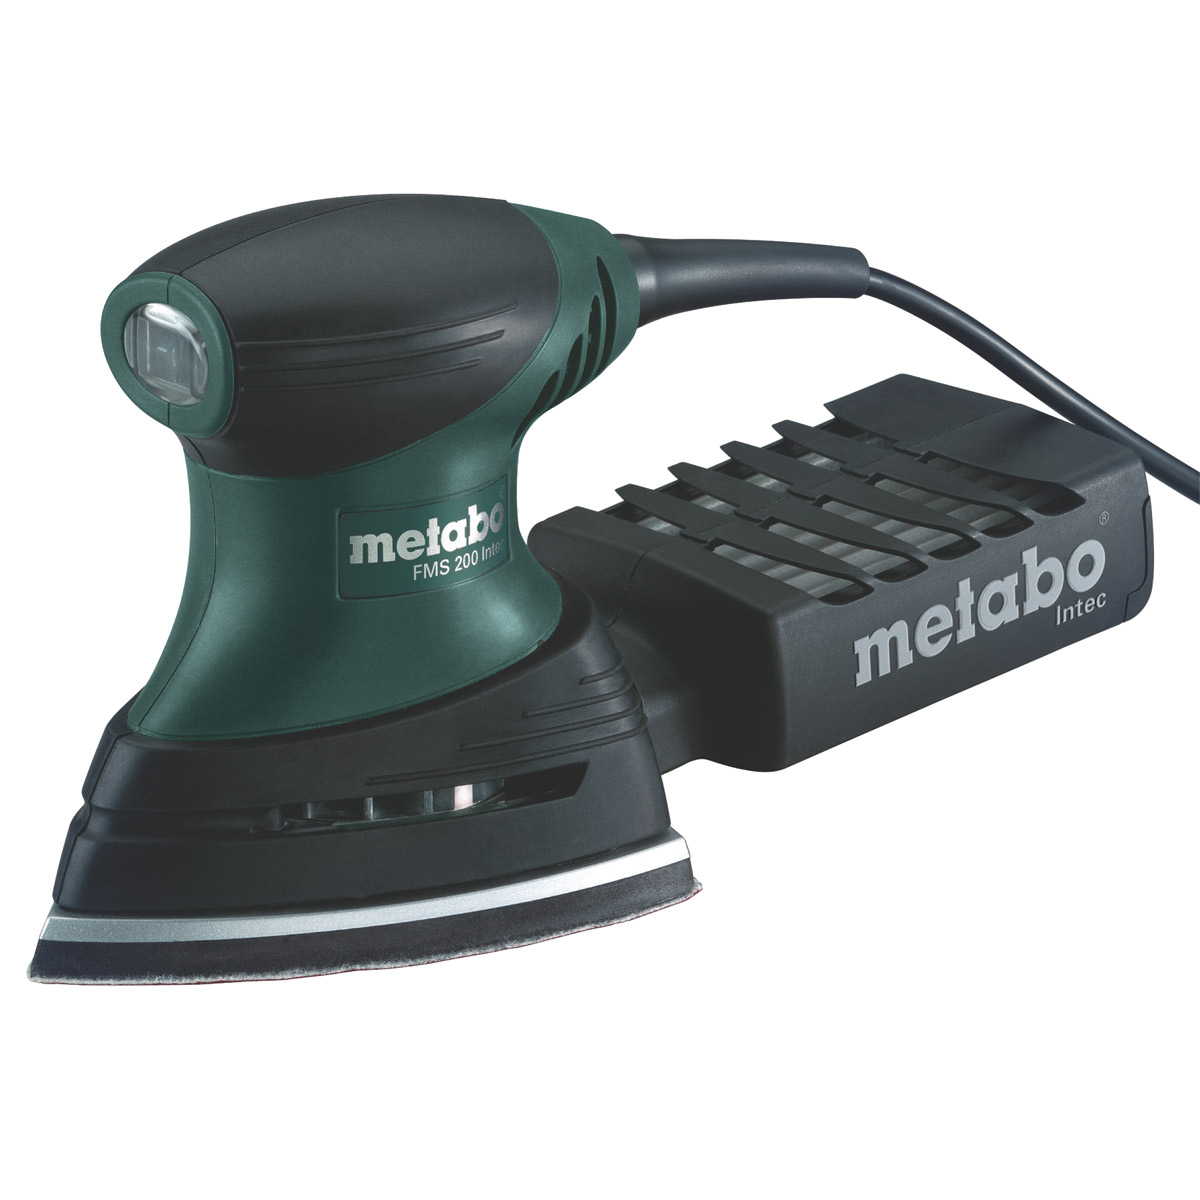 METABO FMS200 INTEC PALM TRI SANDER 240V